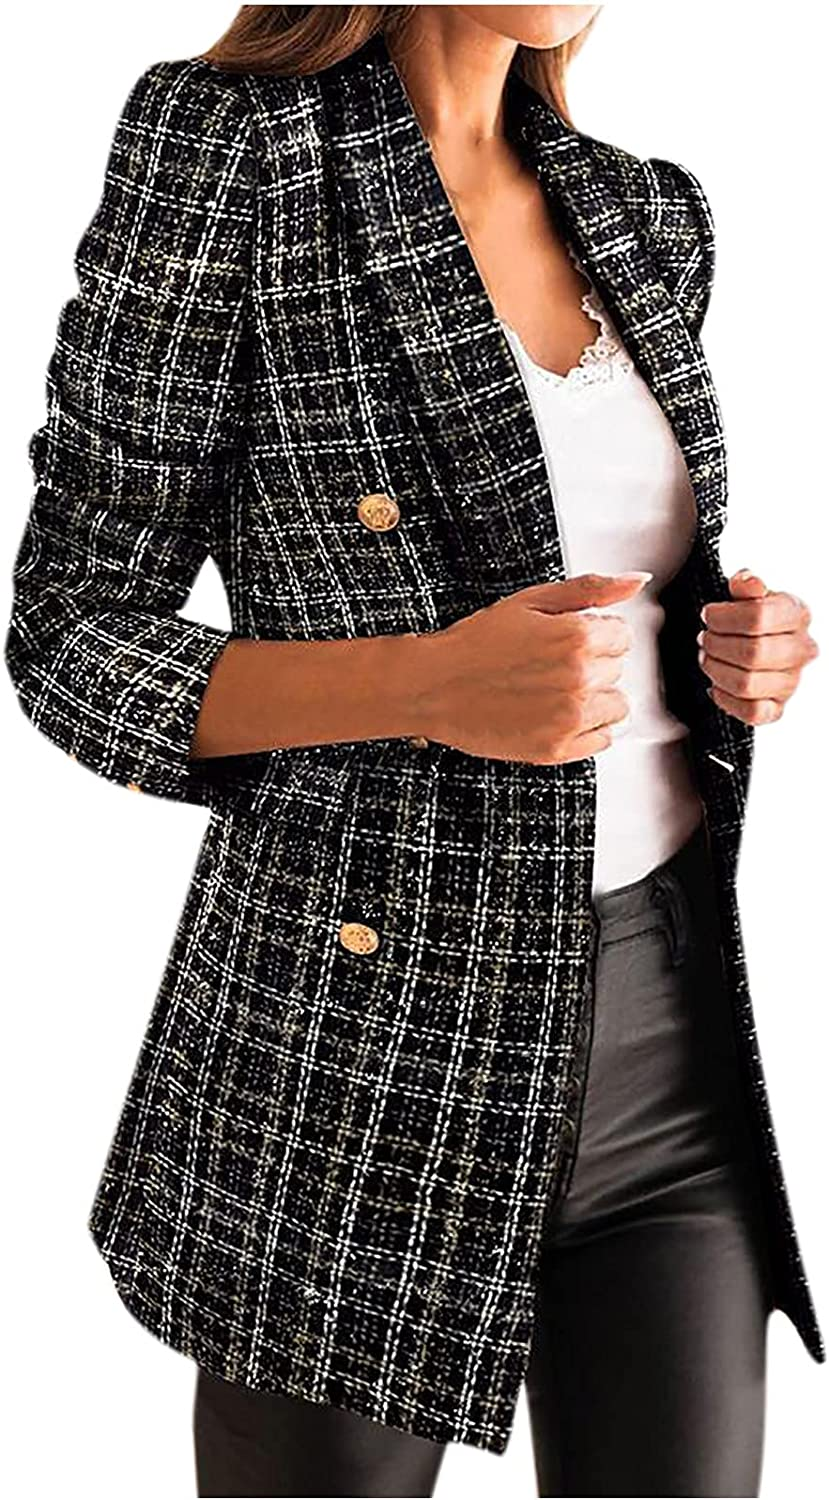 Kanzd Blazers for Women Women's Blazer Plaid Open Discount mail order Limited Special Price Fashion Front